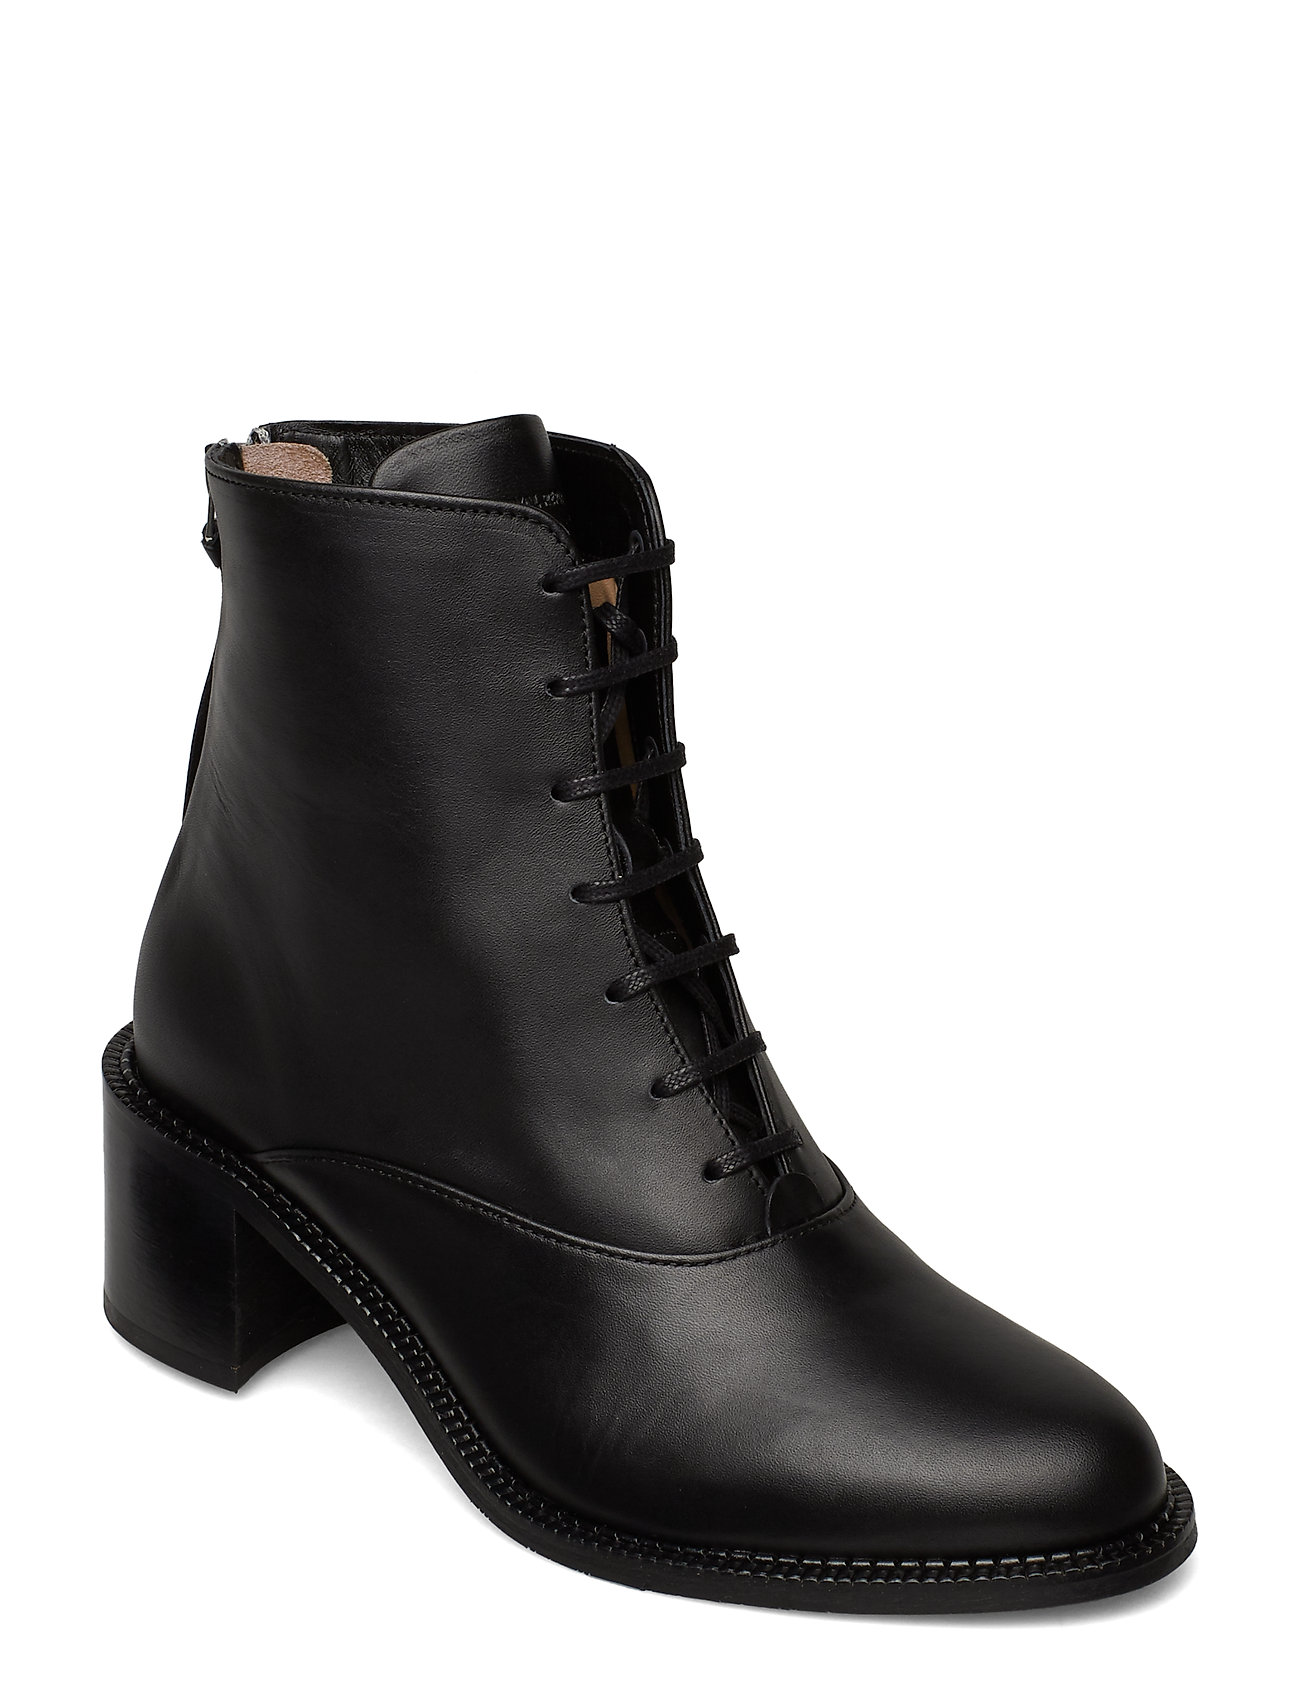 Image of Town Lace Up Boot Shoes Boots Ankle Boots Ankle Boots With Heel Sort Royal RepubliQ (3194553511)